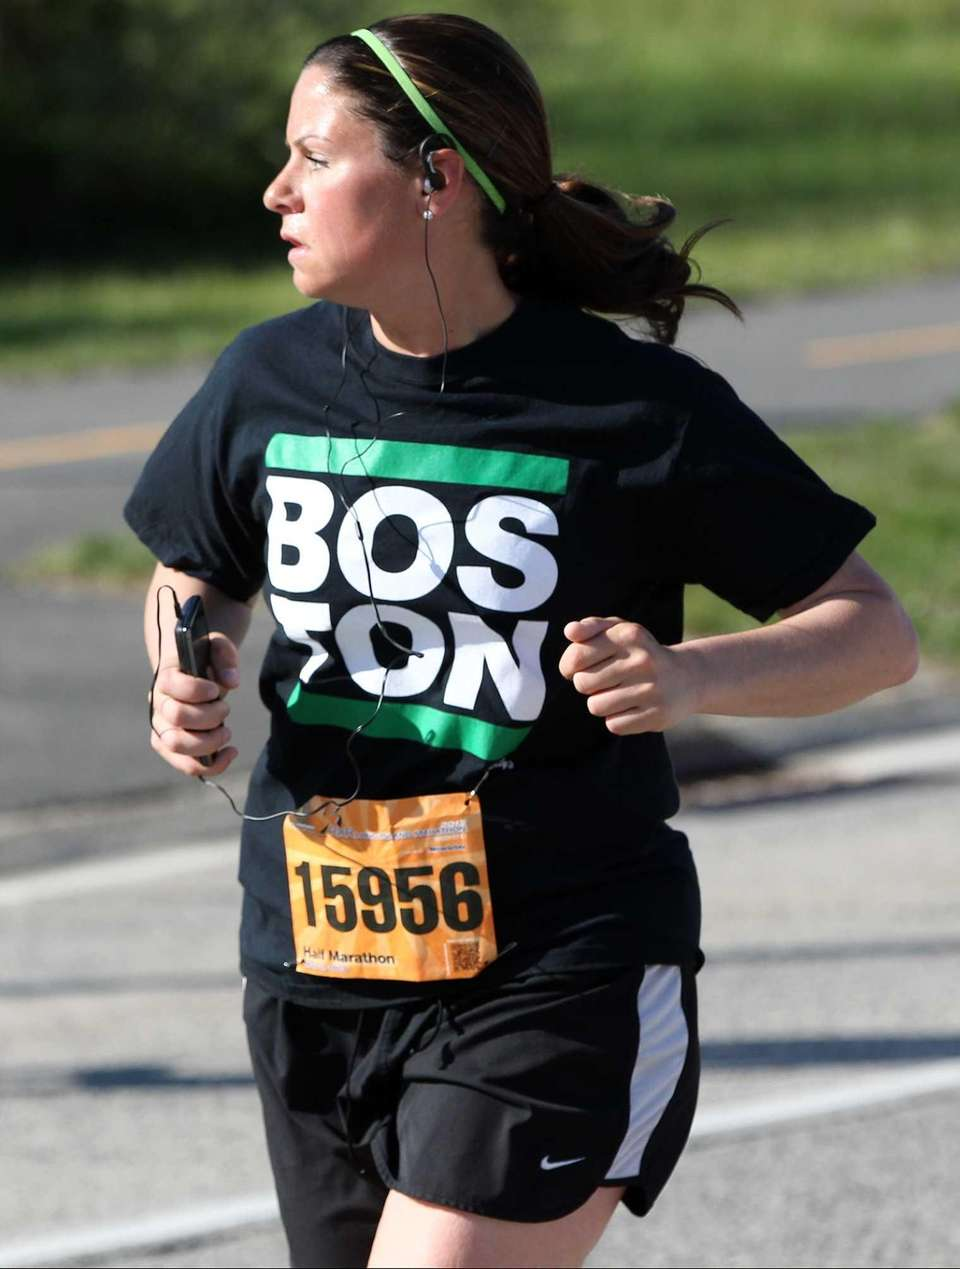 A runner in the Long Island Marathon wears